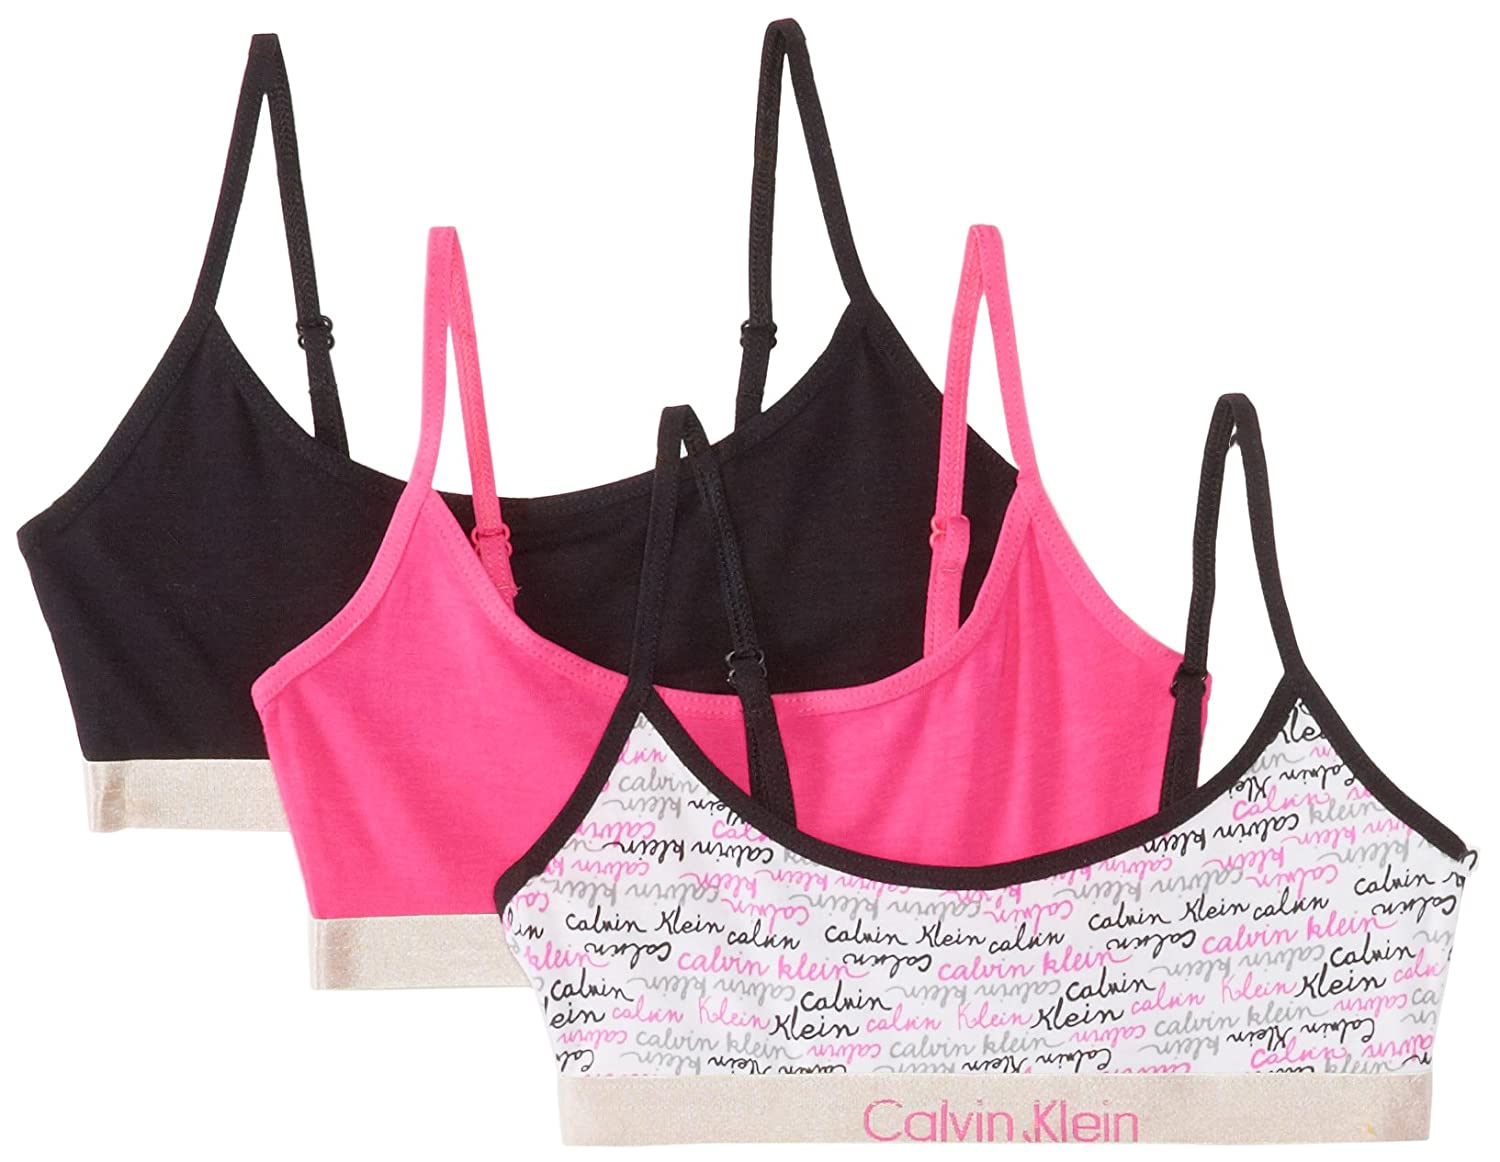 Calvin Klein Big Girls' Fashion Crop Bra (Pack of 3) 2537137223-99-PC